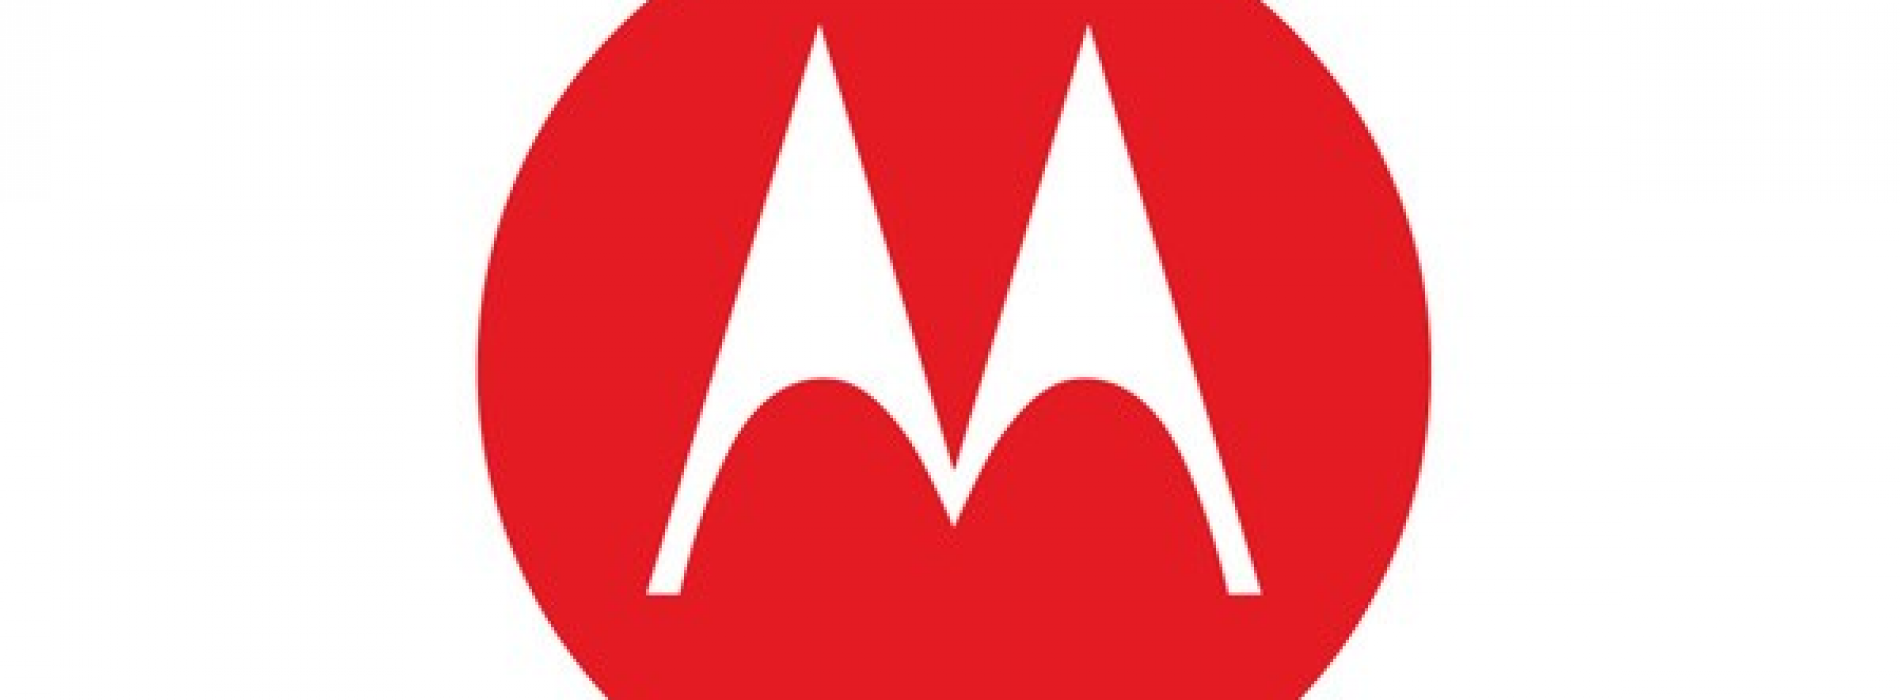 Q3 What?! Motorola Mobility updates Android 4.0 details for devices